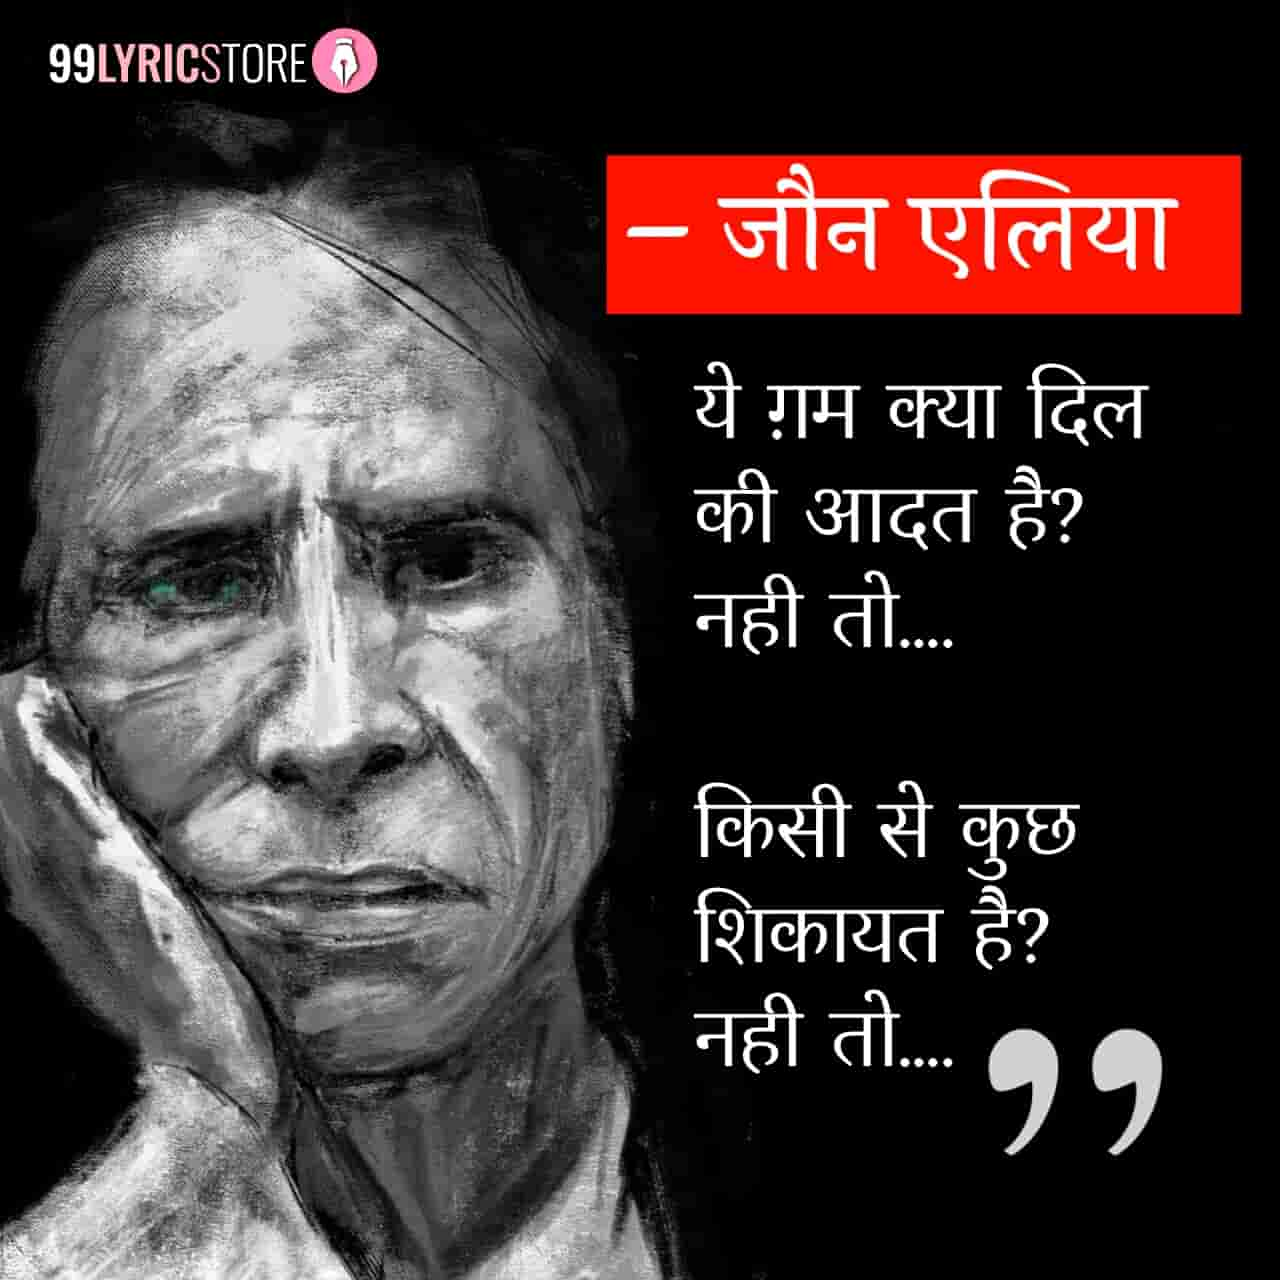 This beautiful ghazal 'Yeh Gham Kya Dil Ki Aadat Hai? Nahin To' has written by Jaun Elia.